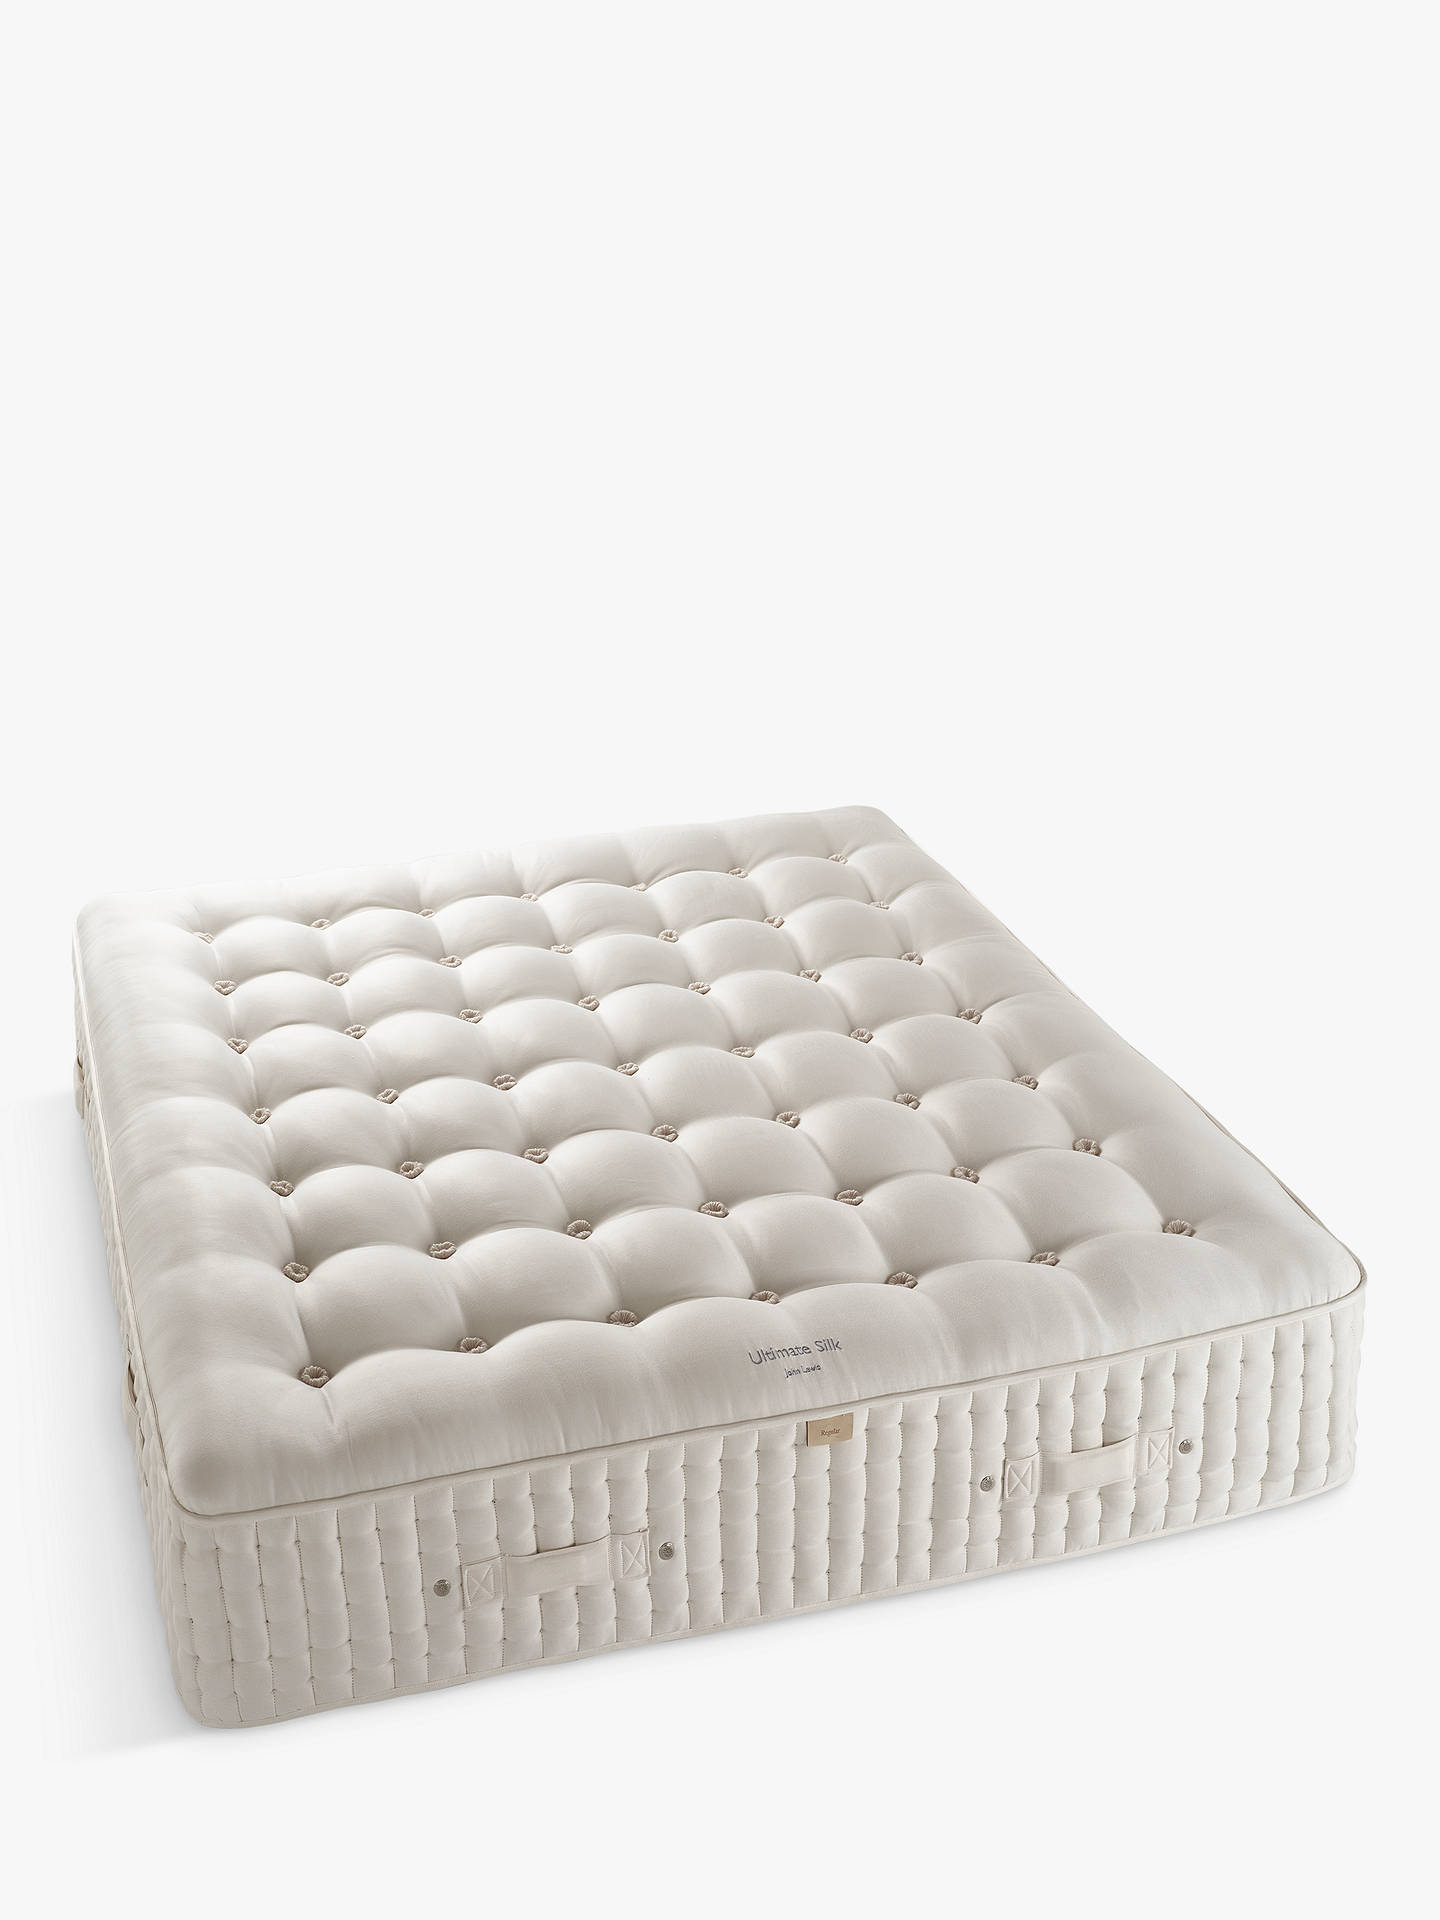 BuyJohn Lewis & Partners The Ultimate Collection Silk Pocket Spring Mattress, Medium, Emperor Online at johnlewis.com